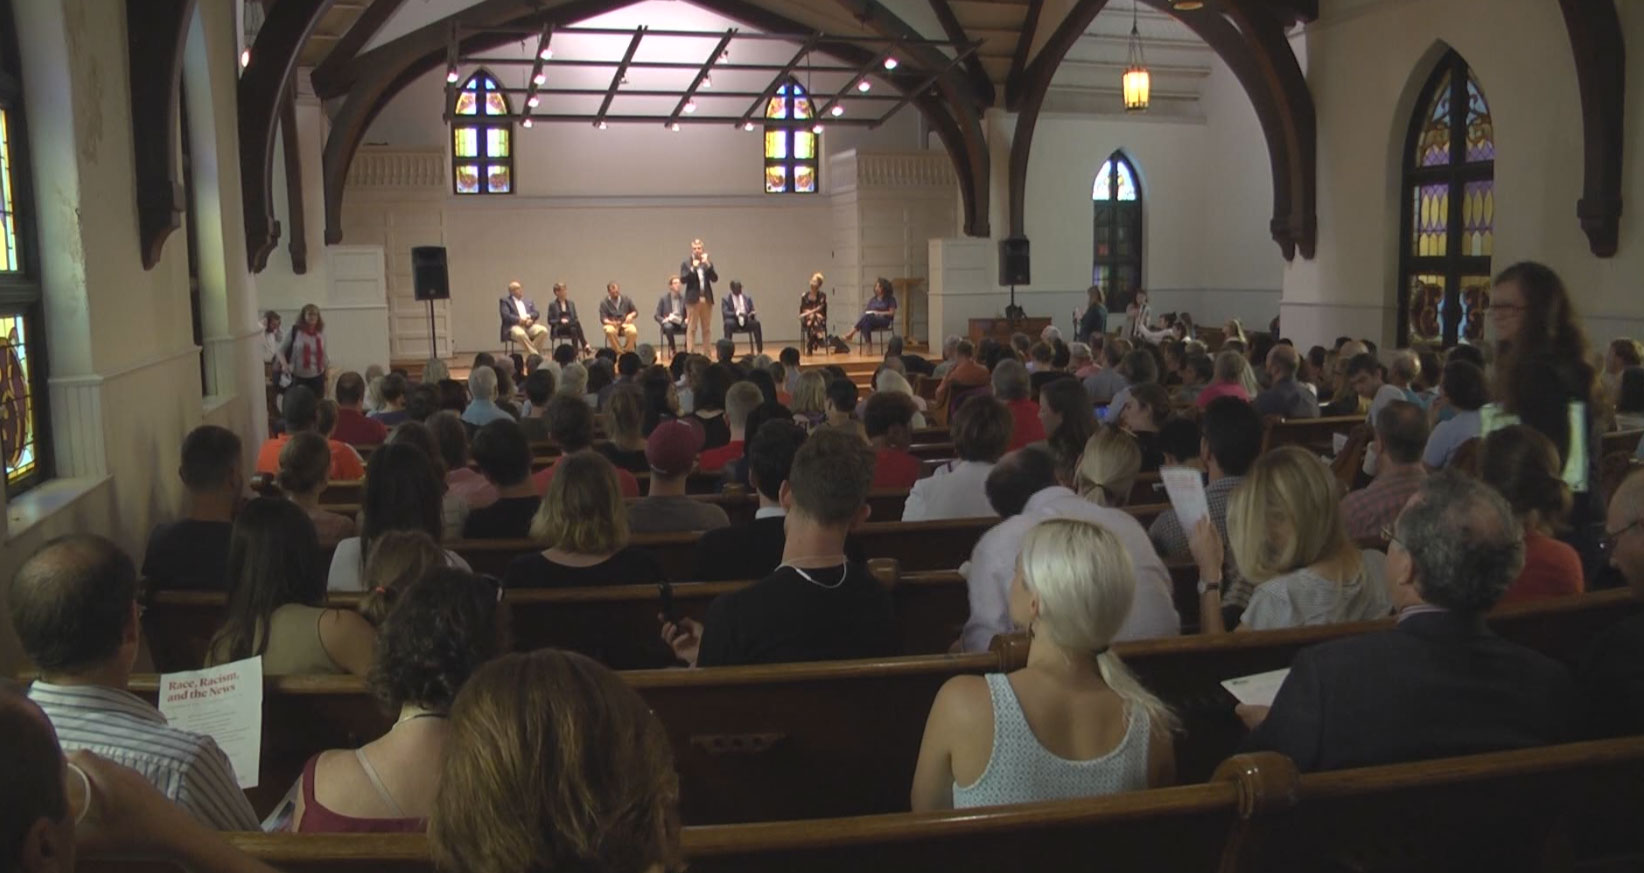 Monday's panel in Charlottesville, Va., on how journalists cover race and racism in American communities was sponsored by Columbia Journalism Review, the Center for Media and Citizenship, C-VILLE Weekly, and Charlottesville Tomorrow. (Credit: WVIR-TV)